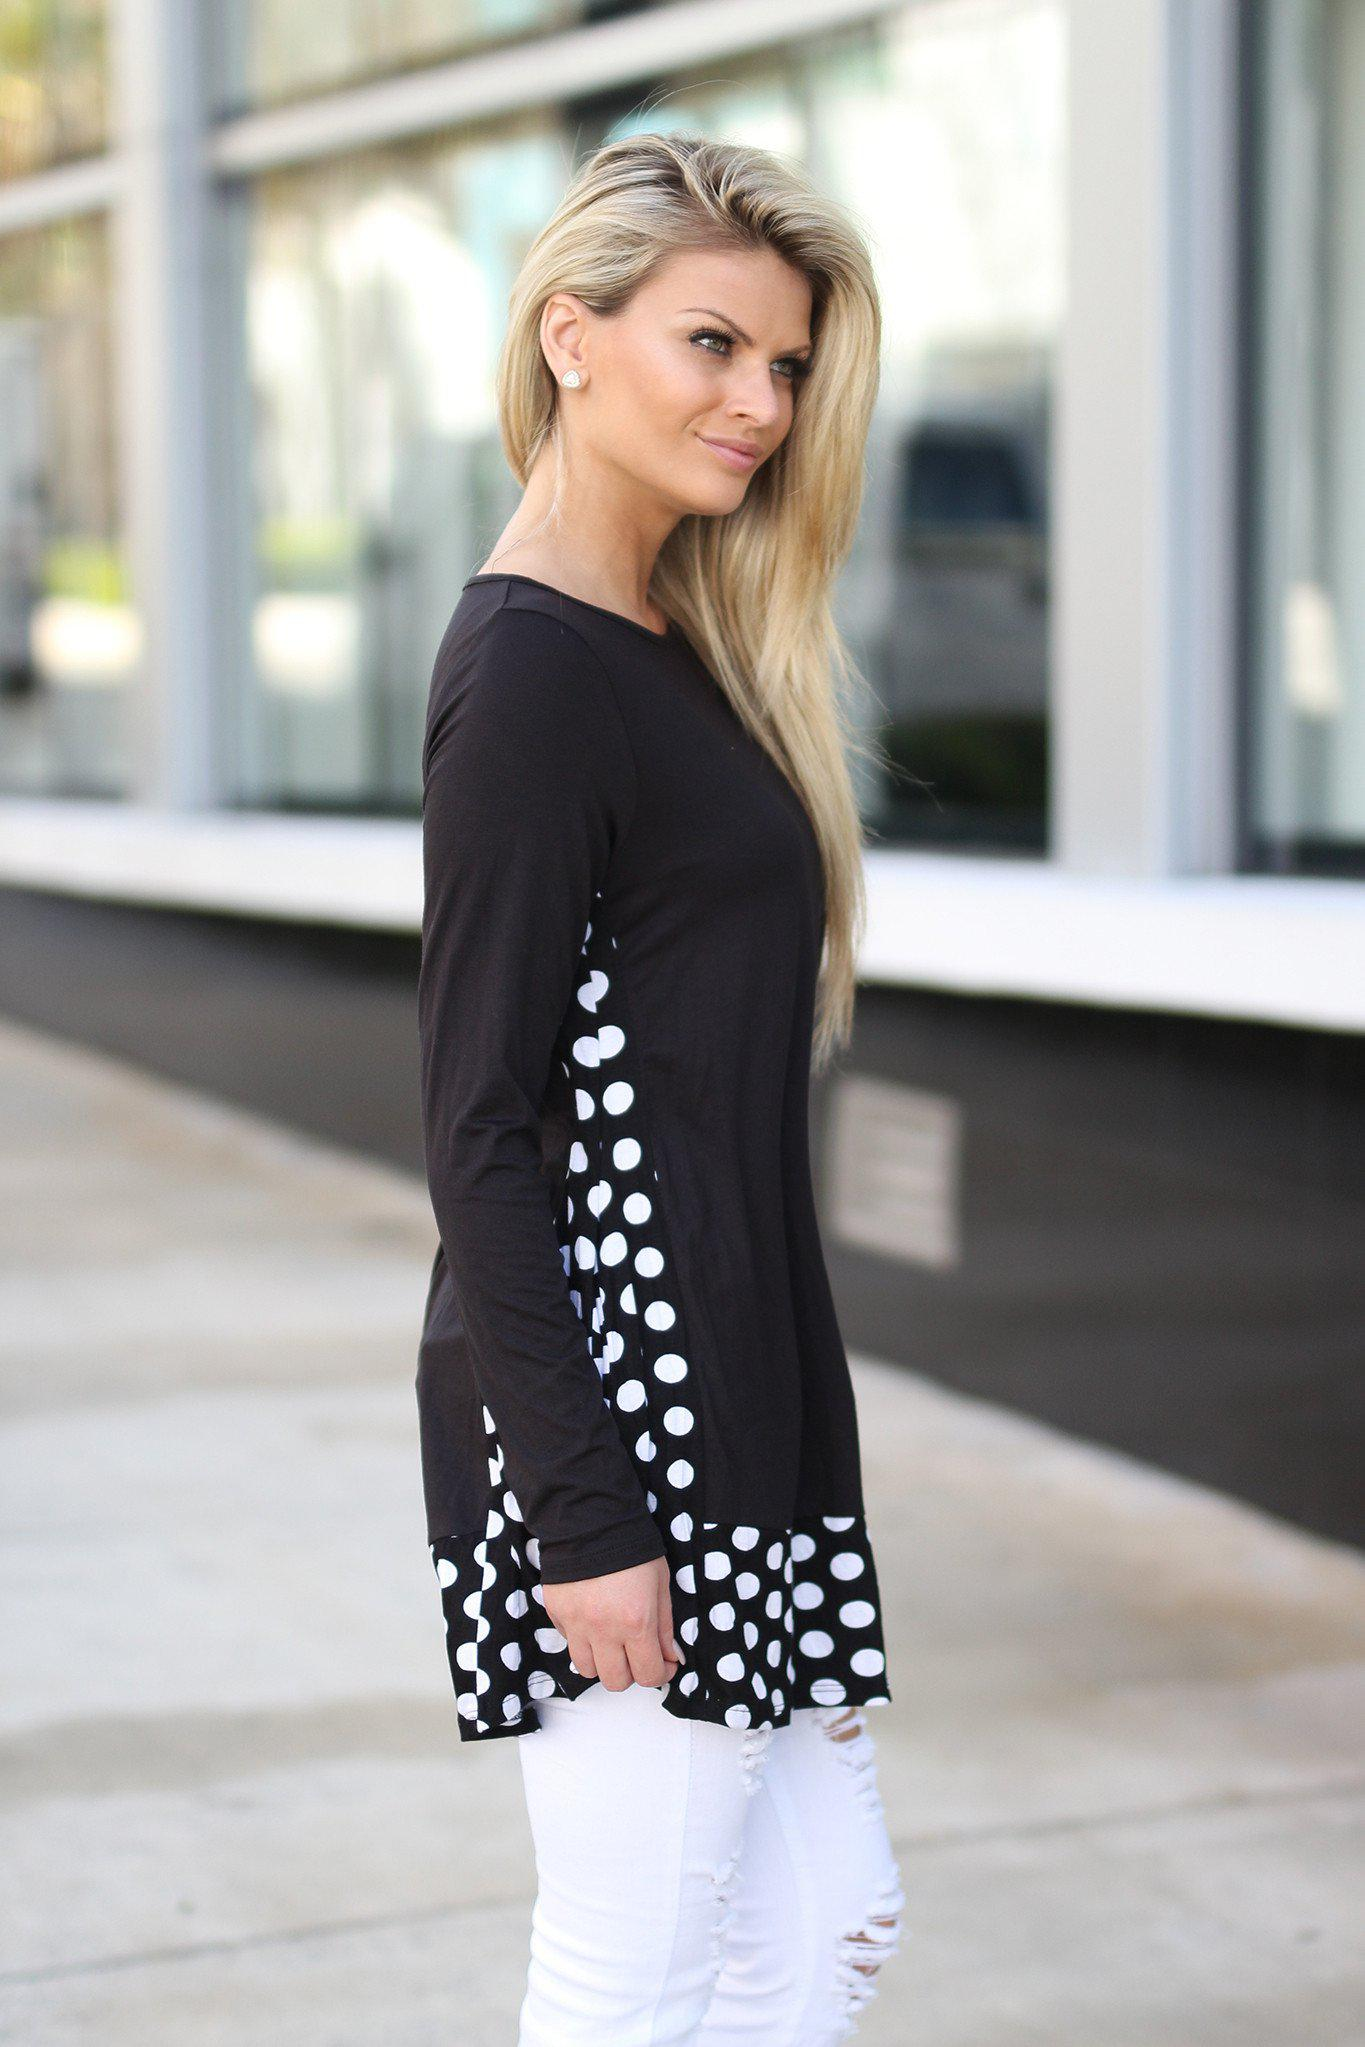 Black Polka Dot Tunic